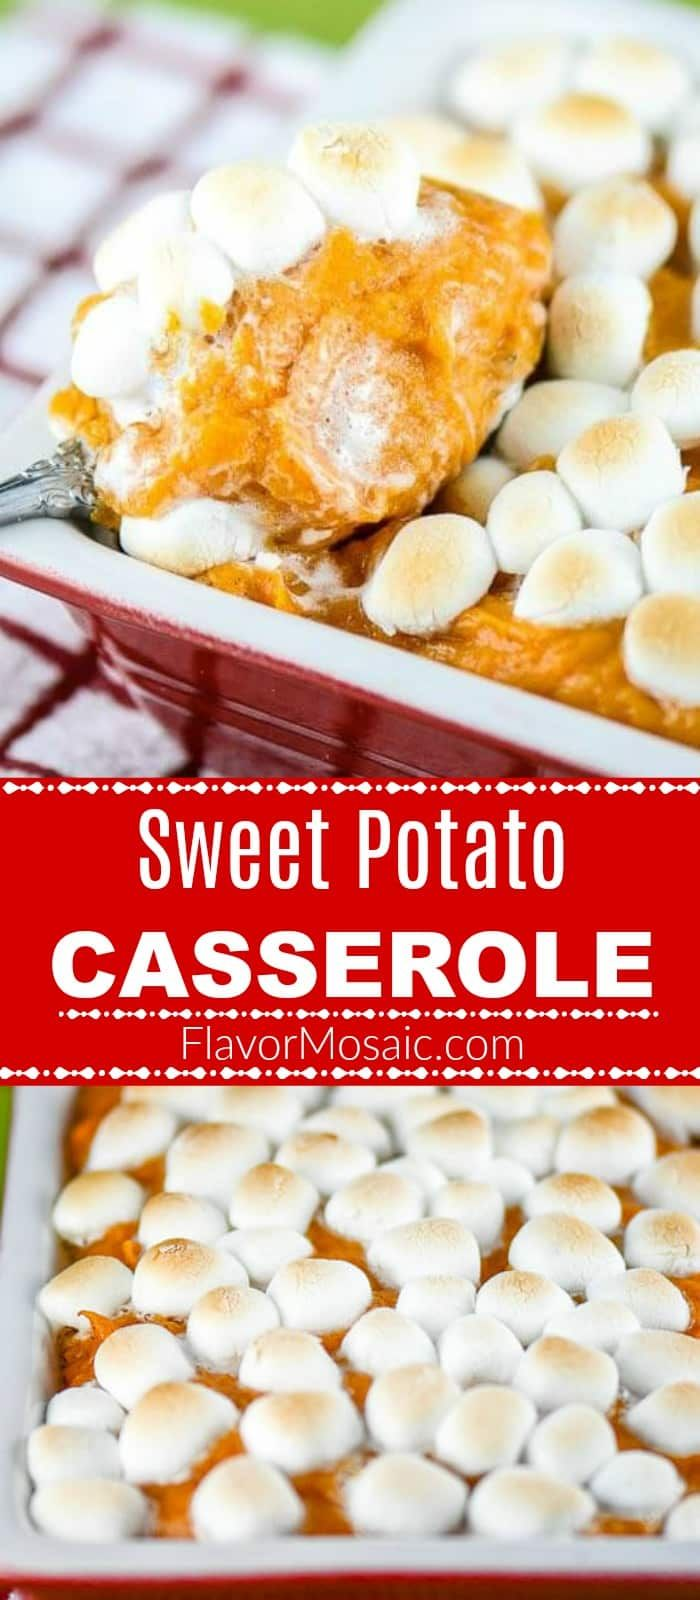 This Sweet Potato Casserole with Marshmallows, made with fresh sweet potatoes, has been a traditional Thanksgiving side dish in our family. #sweetpotatocasserolewithmarshmallows